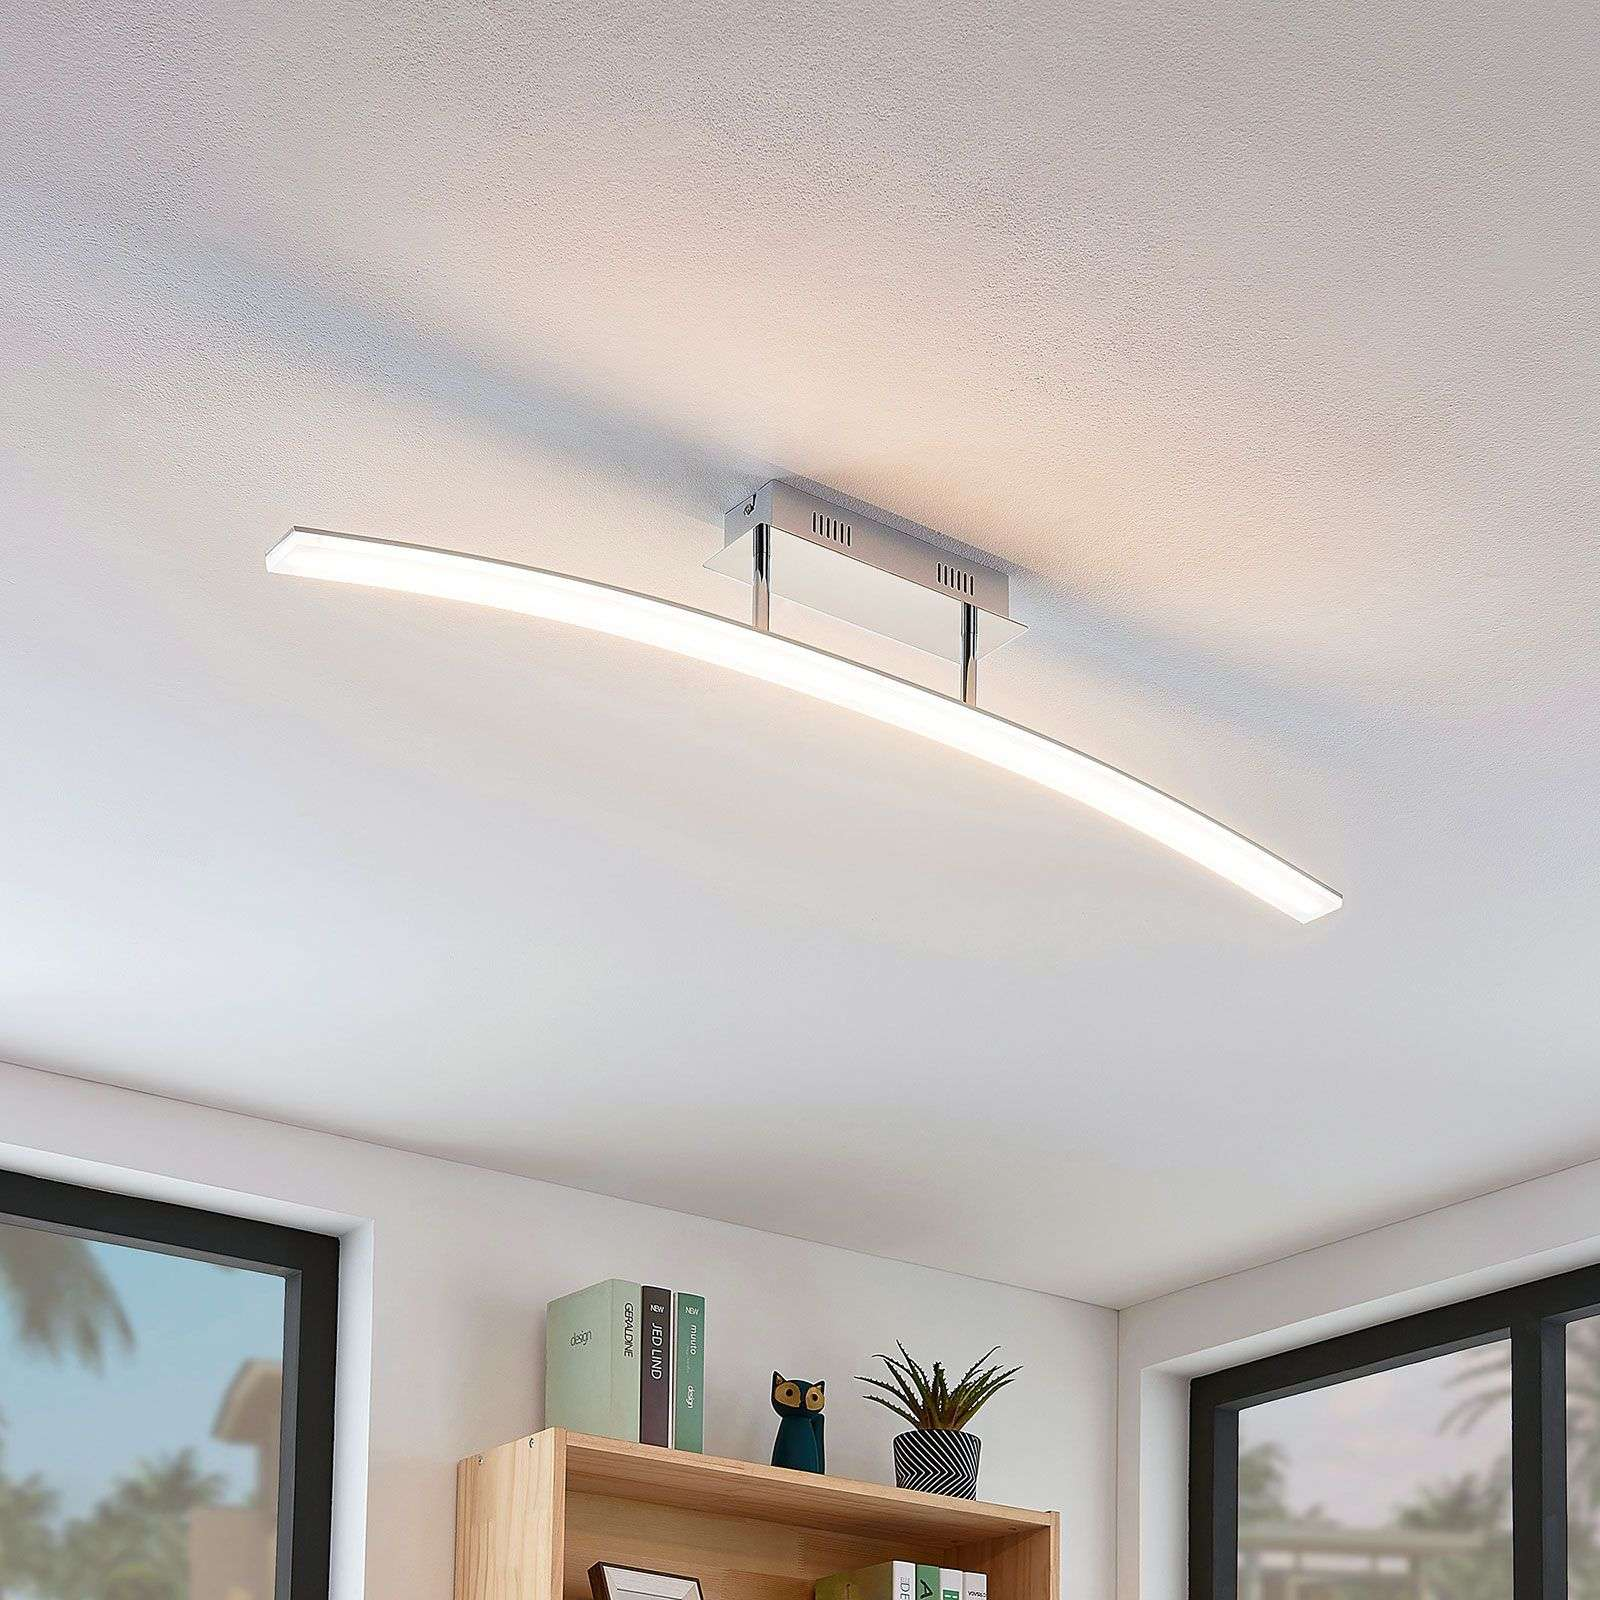 Curved LED ceiling light Lorian | Lights.ie